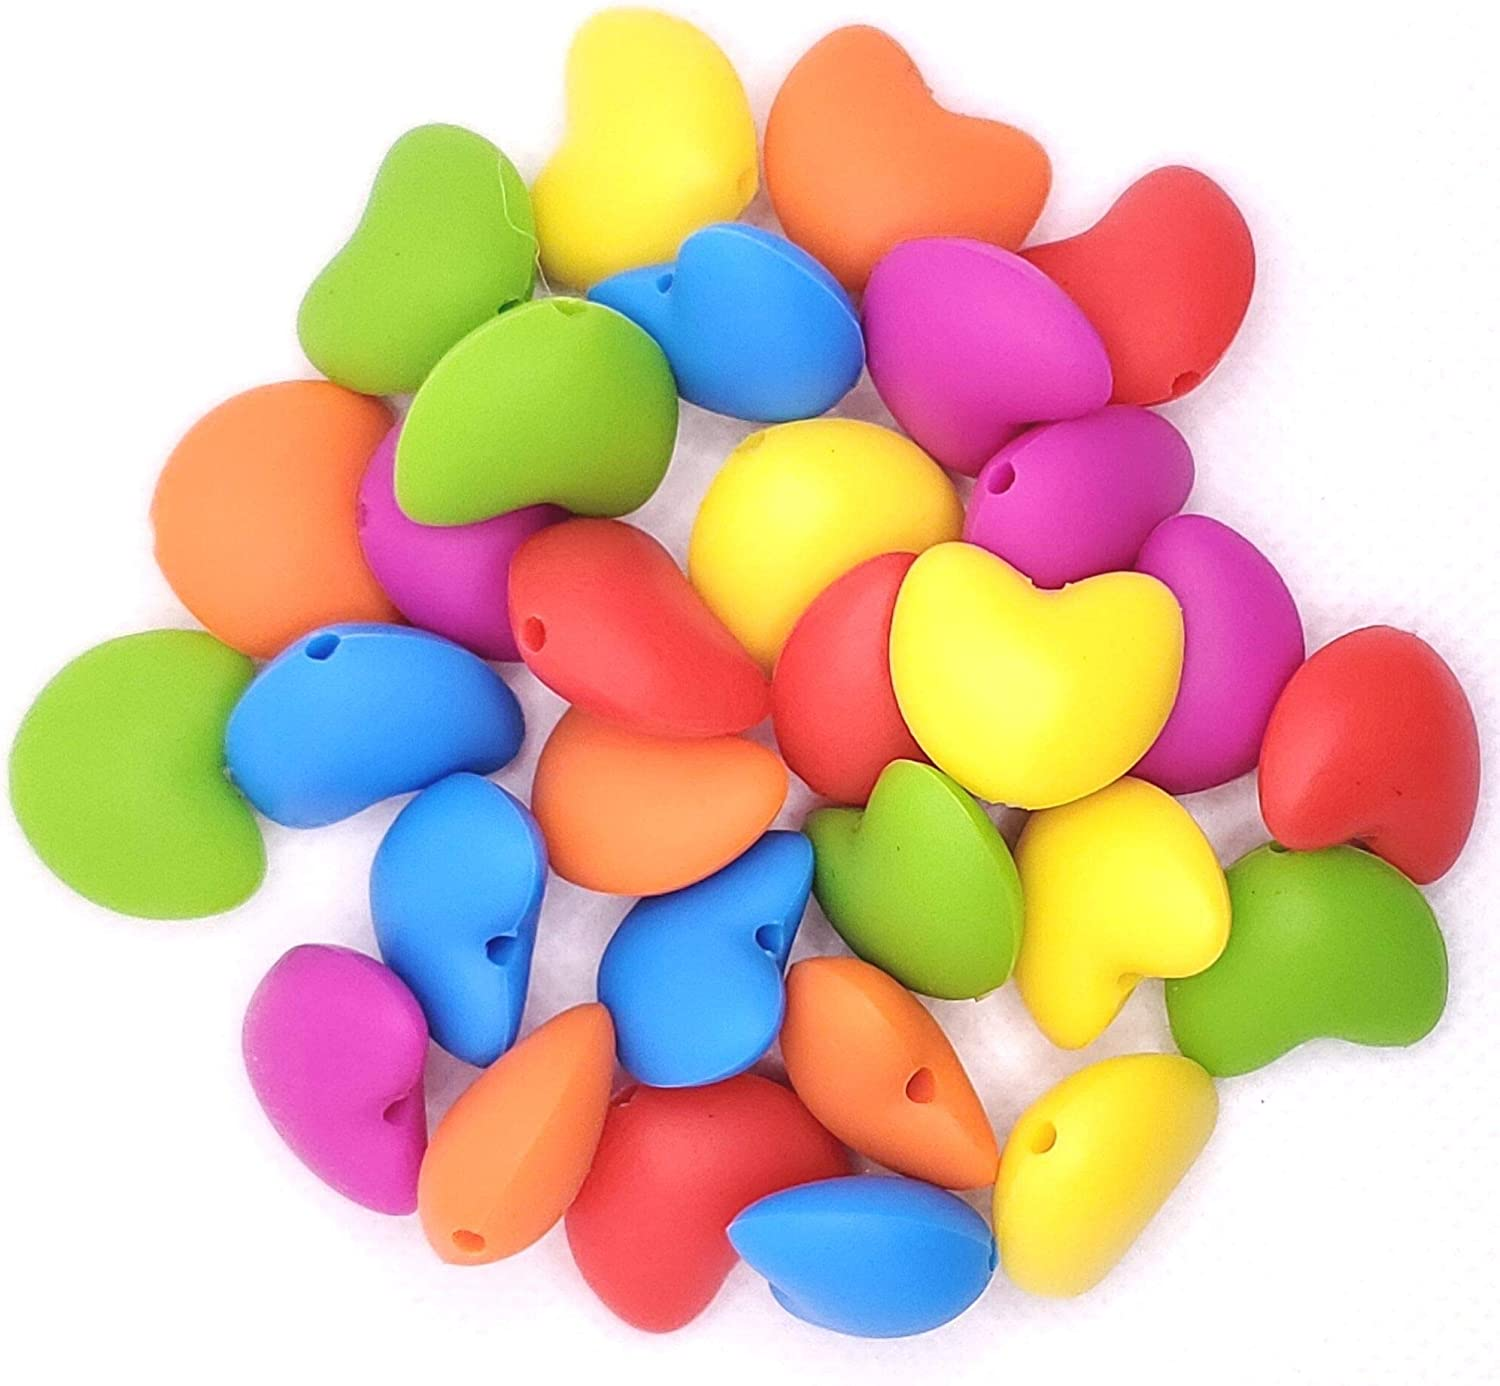 Heart Silicone Beads - Jewelry Necklace Bracelet Making Kit - Food Grade BPA Free Arts and Crafts Supplies (30PC Rainbow)